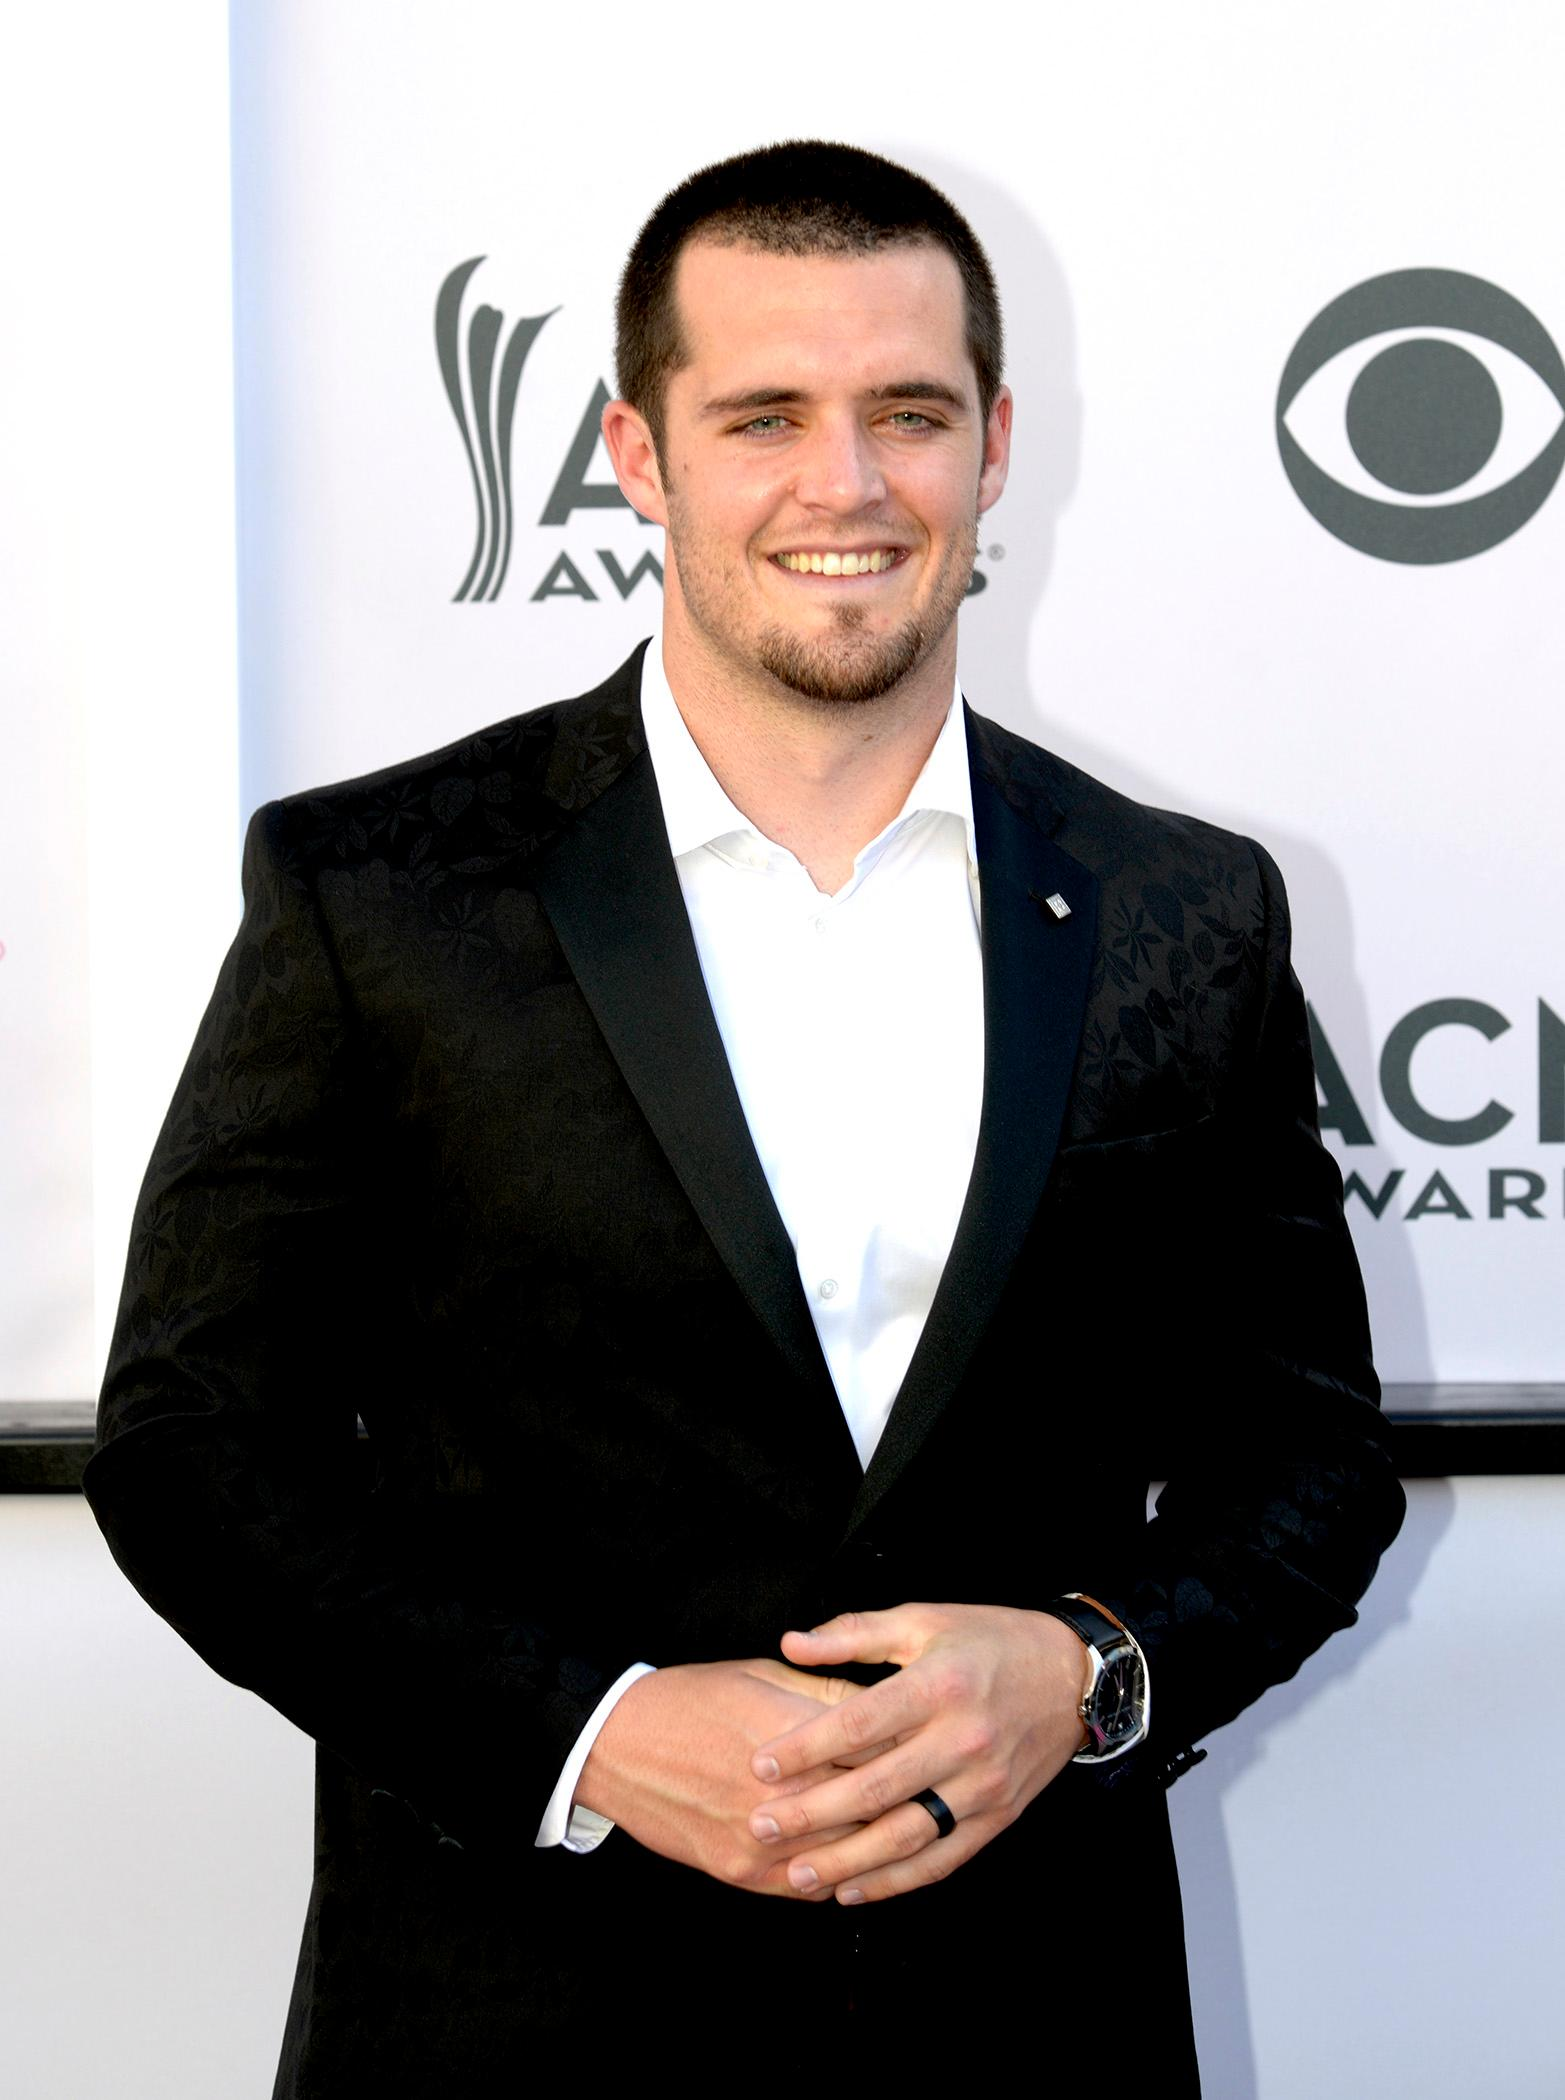 Derek Carr, quarterback for the Oakland Raiders, walks the Academy of Country Music Awards red carpet at T-Mobile Arena. Sunday, April 2, 2017. (Glenn Pinkerton/ Las Vegas News Bureau)